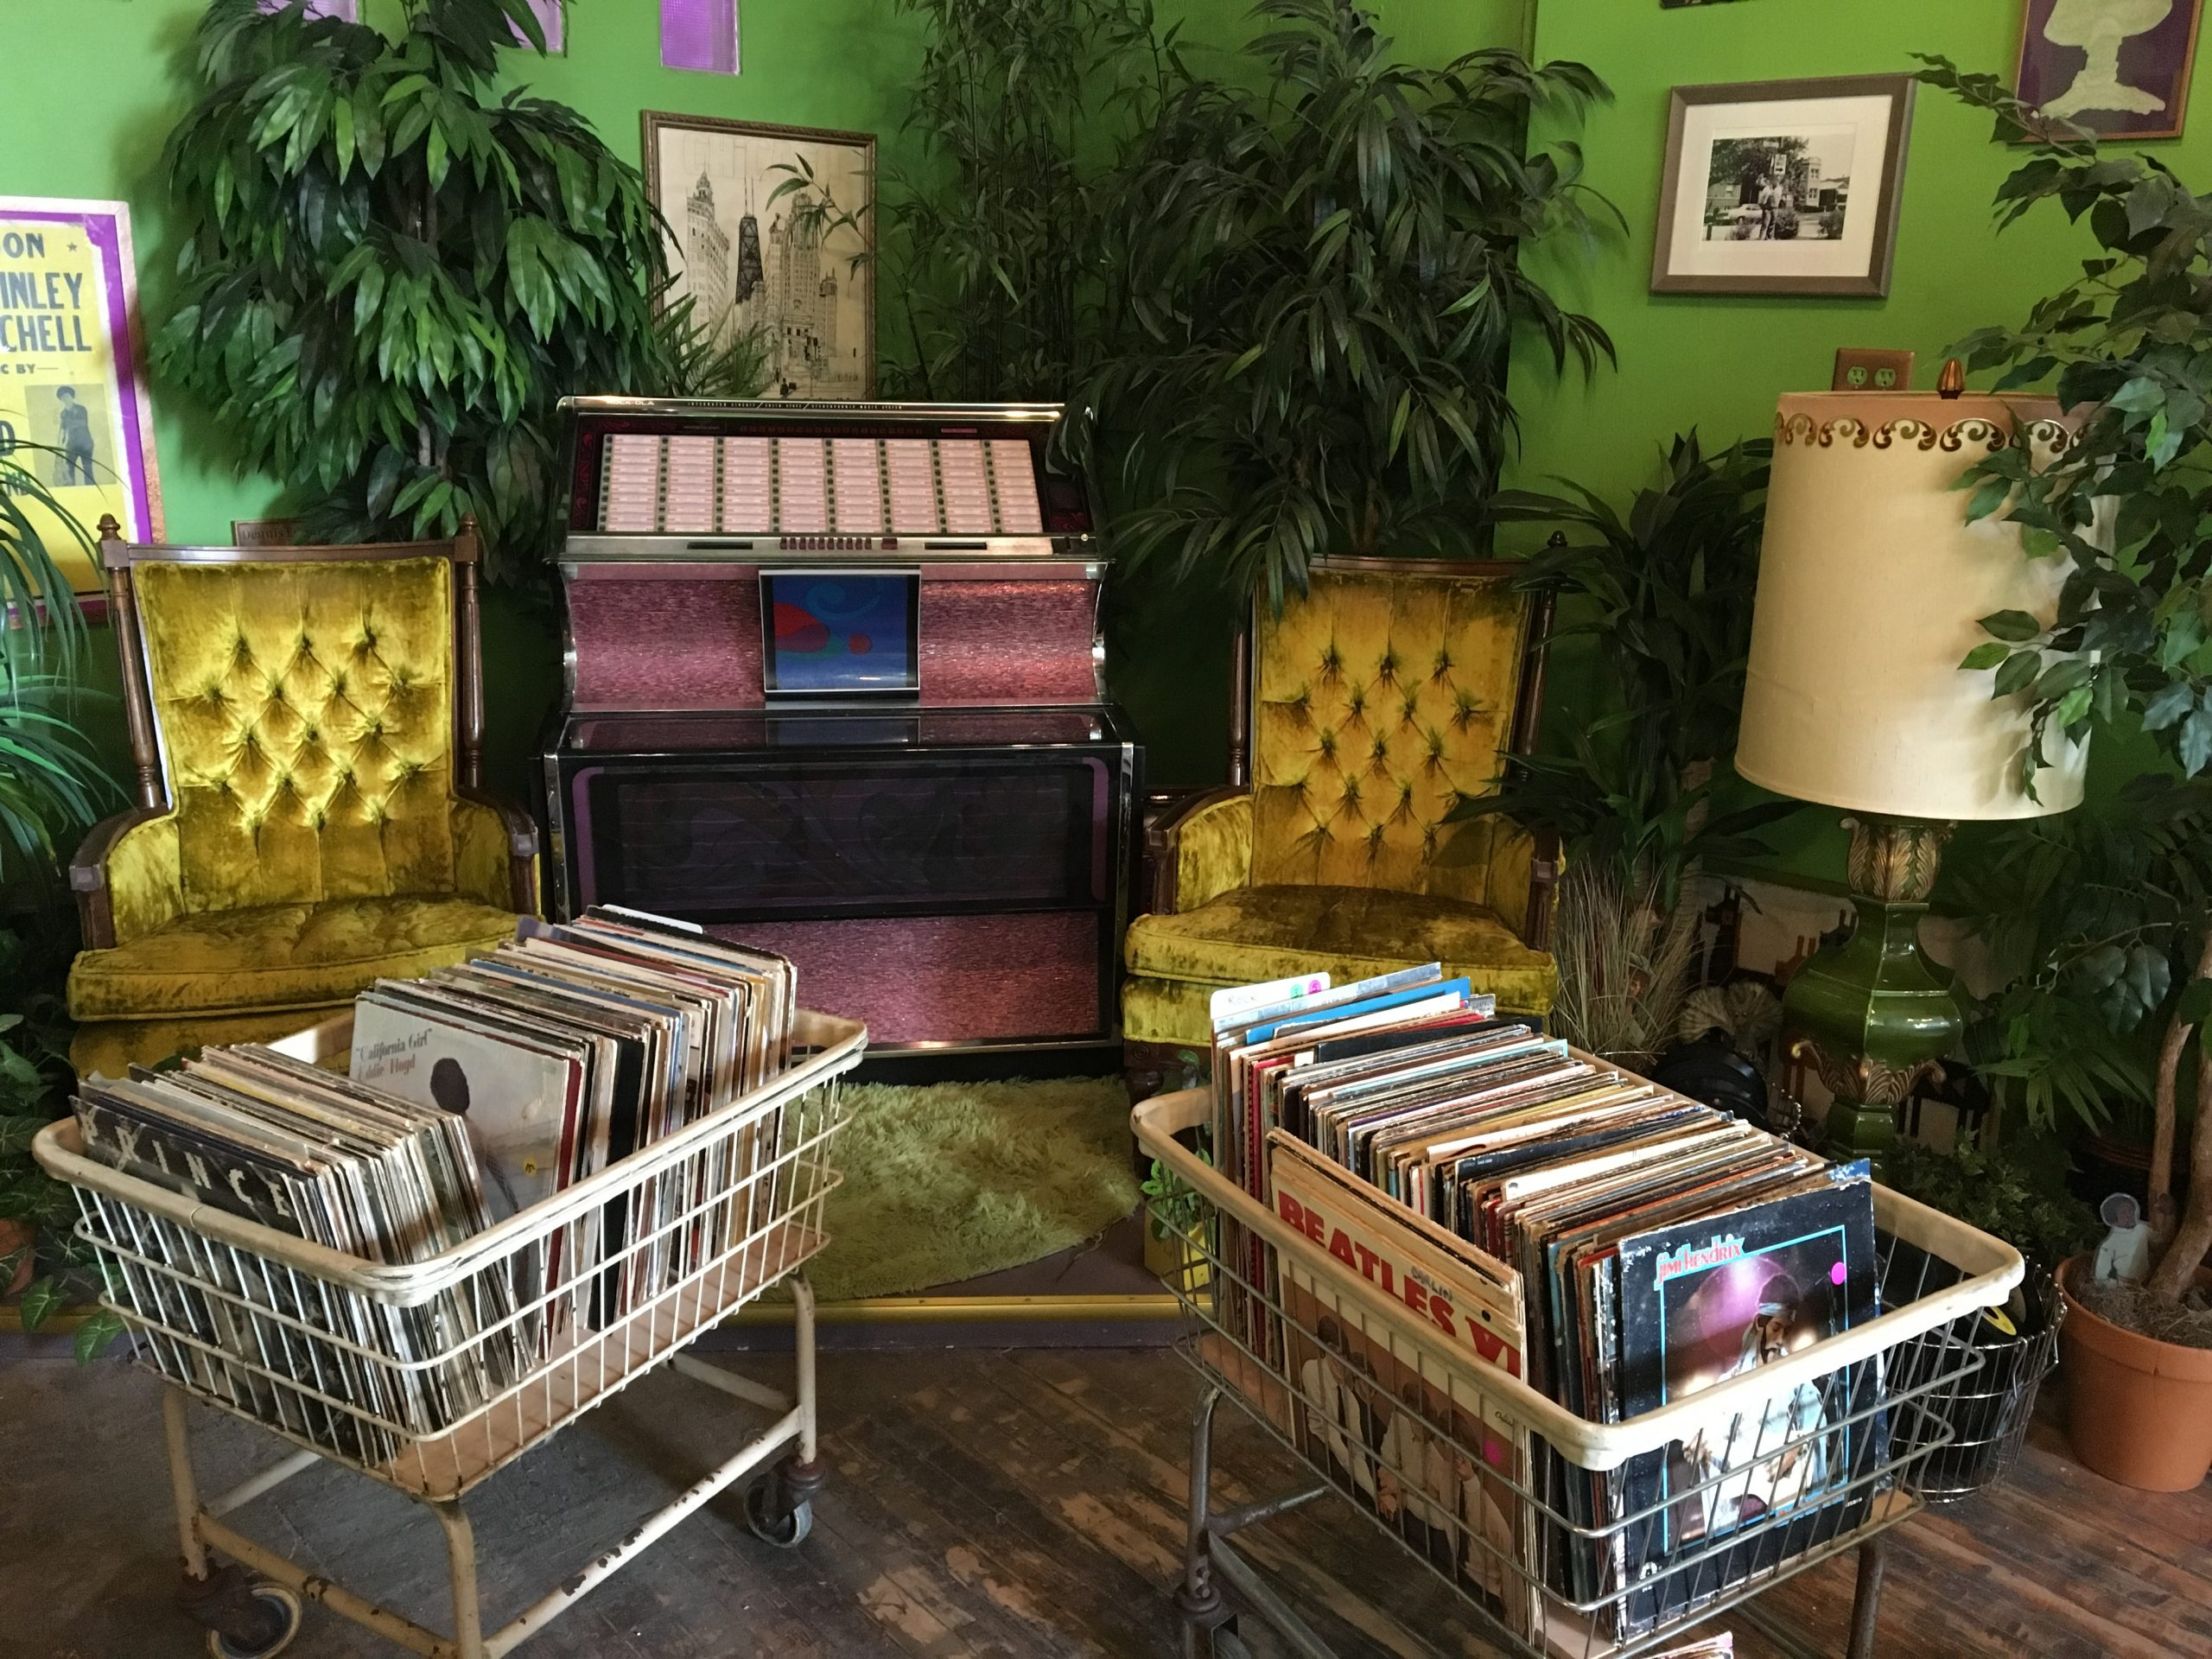 Electric Jungle's vibe is half record store, half living room (because few of us can afford a living-room jukebox).